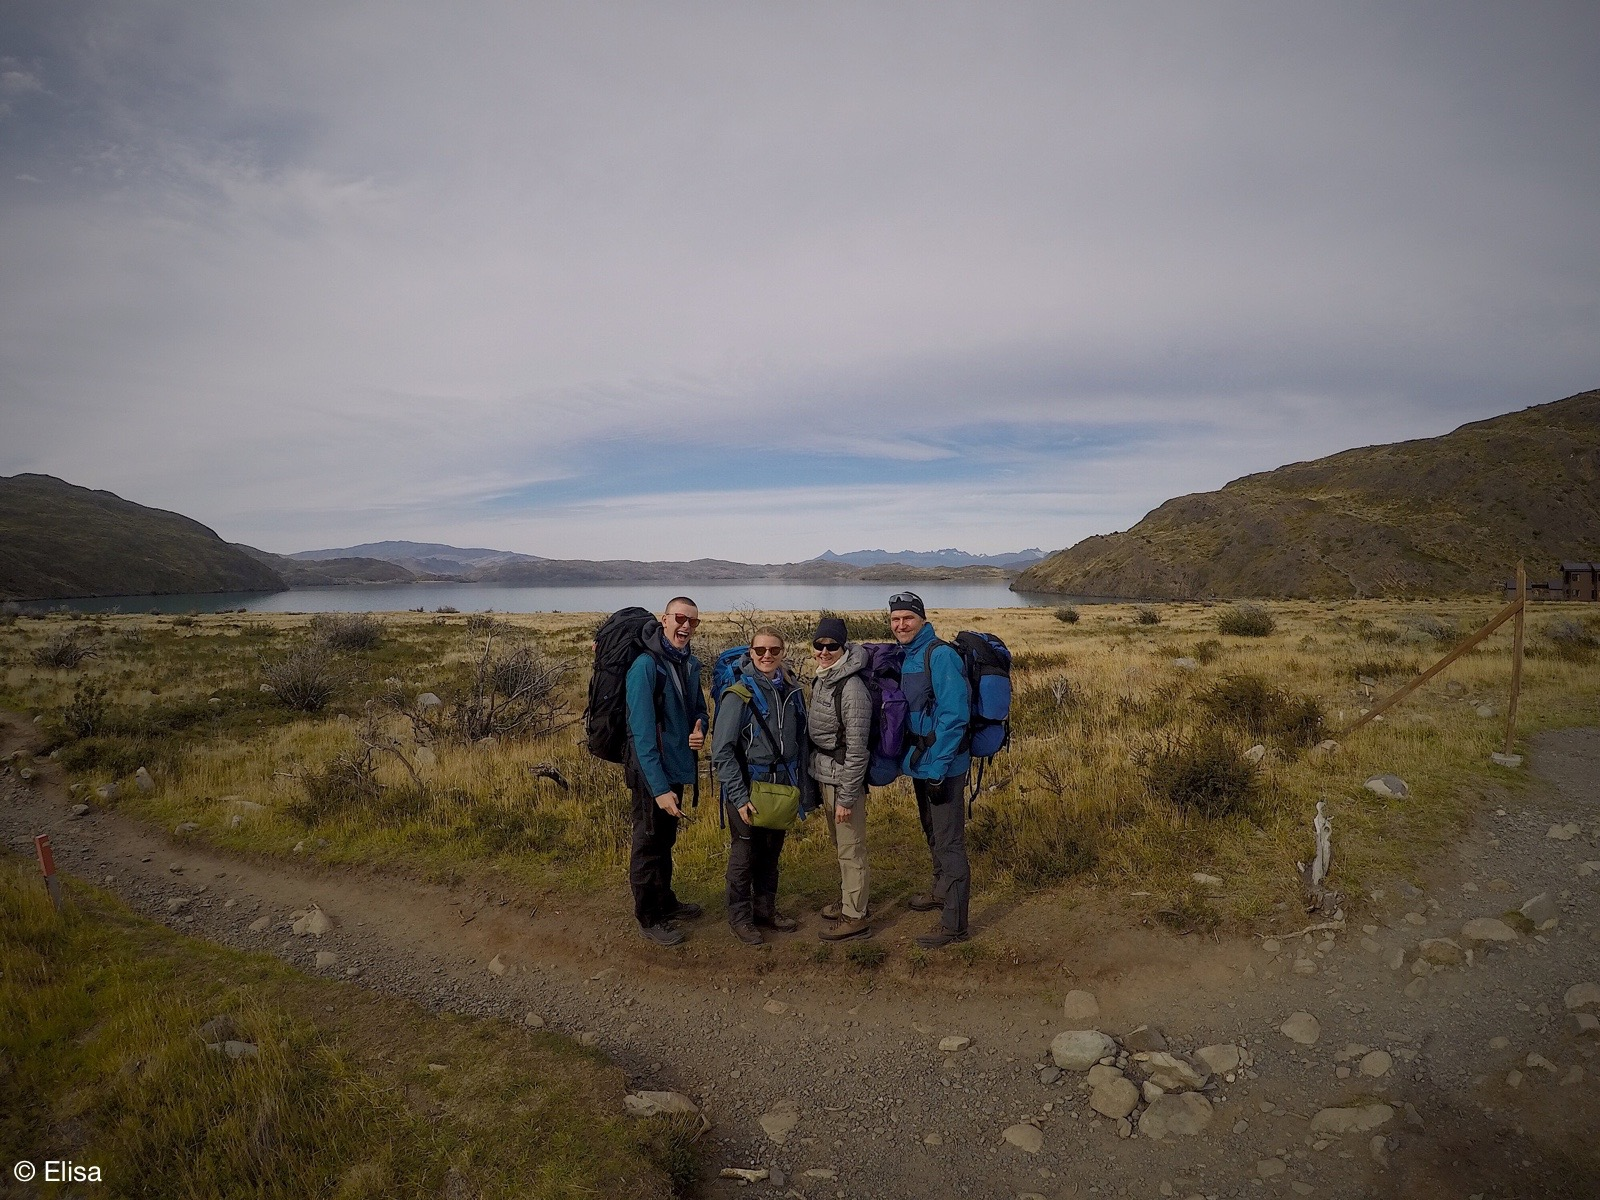 Der W-Trek im Torres del Paine Nationalpark